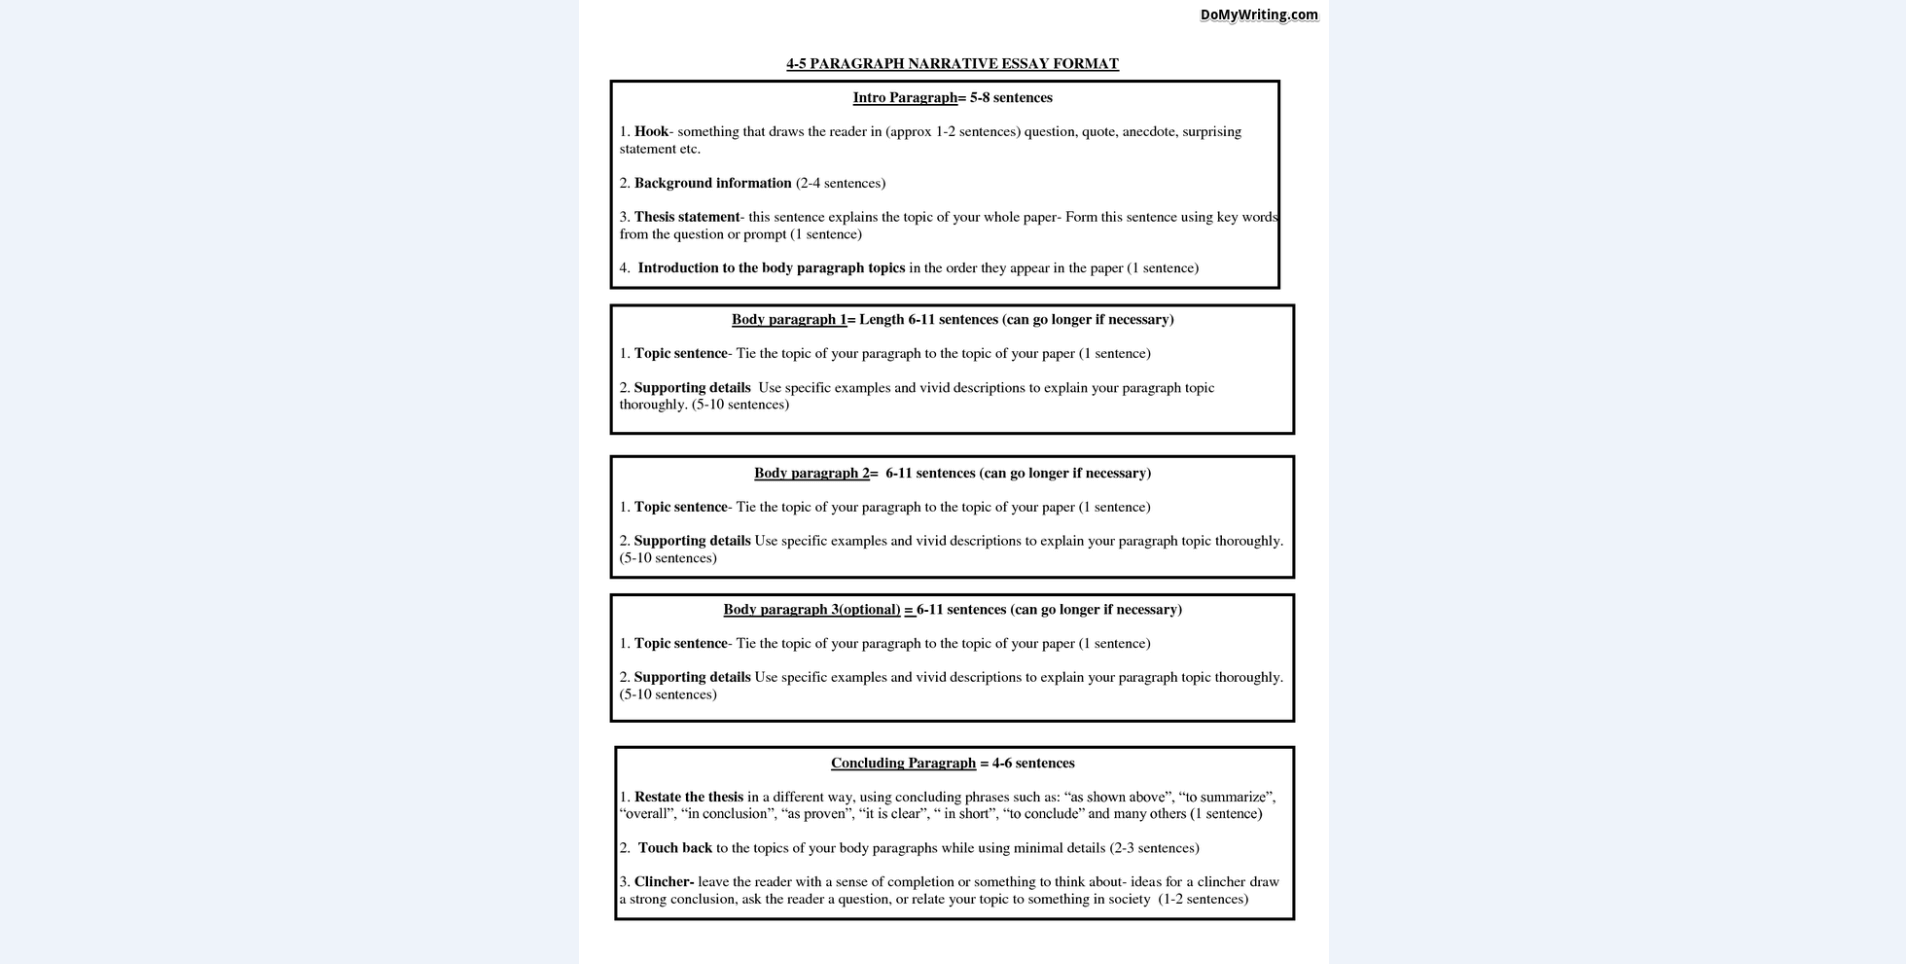 008 Narrative Essay Format Exceptional High School Graphic Organizer 4th Grade Pdf Full